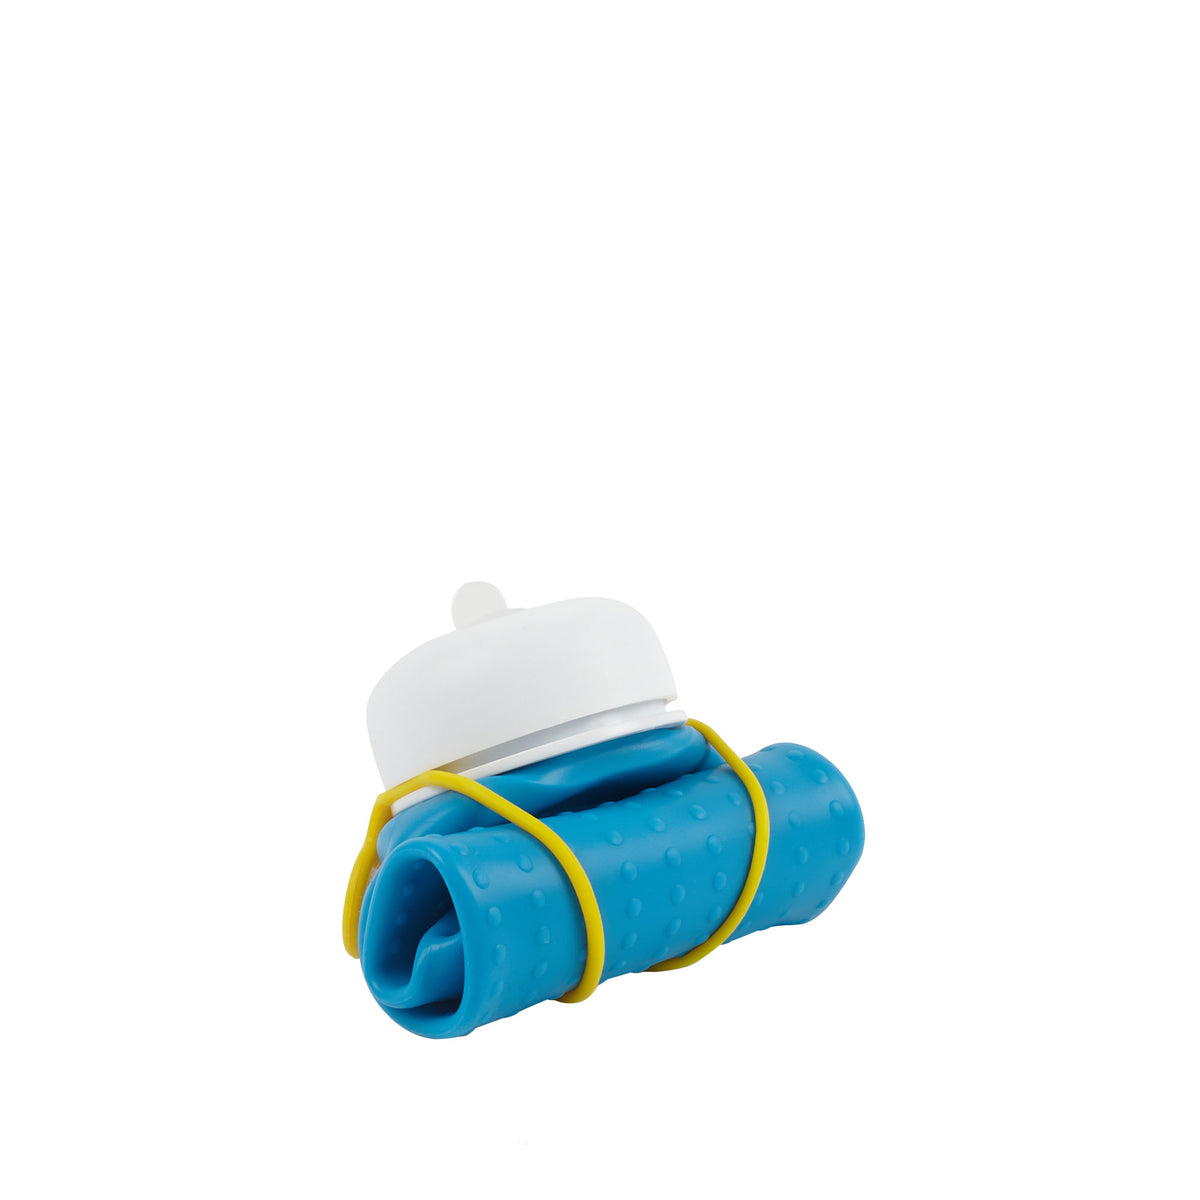 Rolla Bottle - Aqua, White Lid + Yellow Strap, rolled small